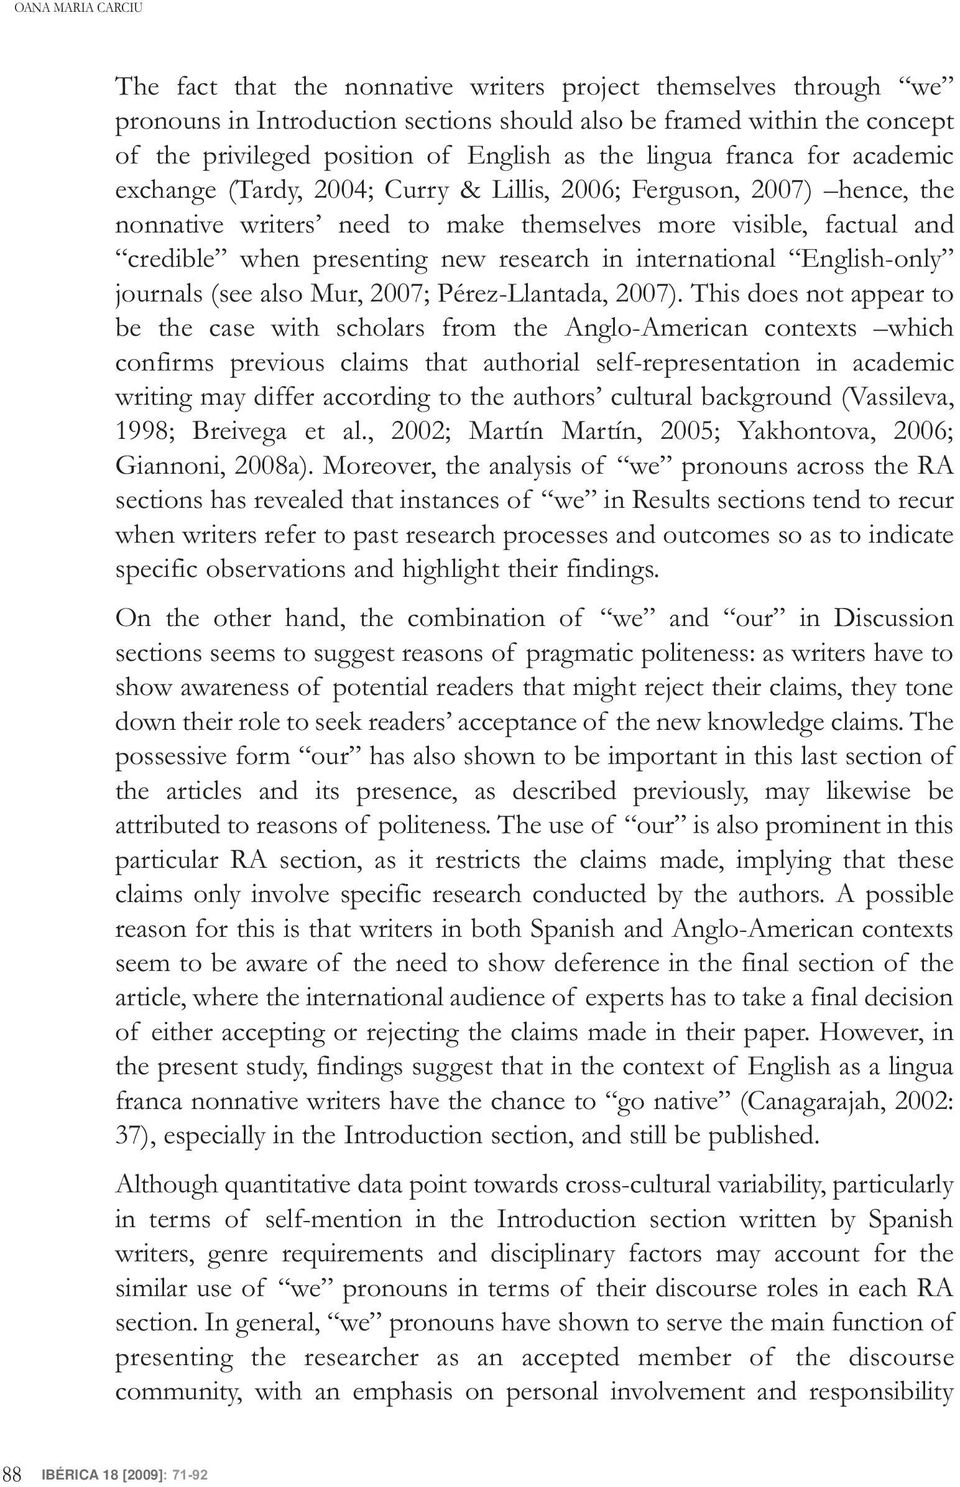 research in international English-only journals (see also Mur, 2007; Pérez-Llantada, 2007).